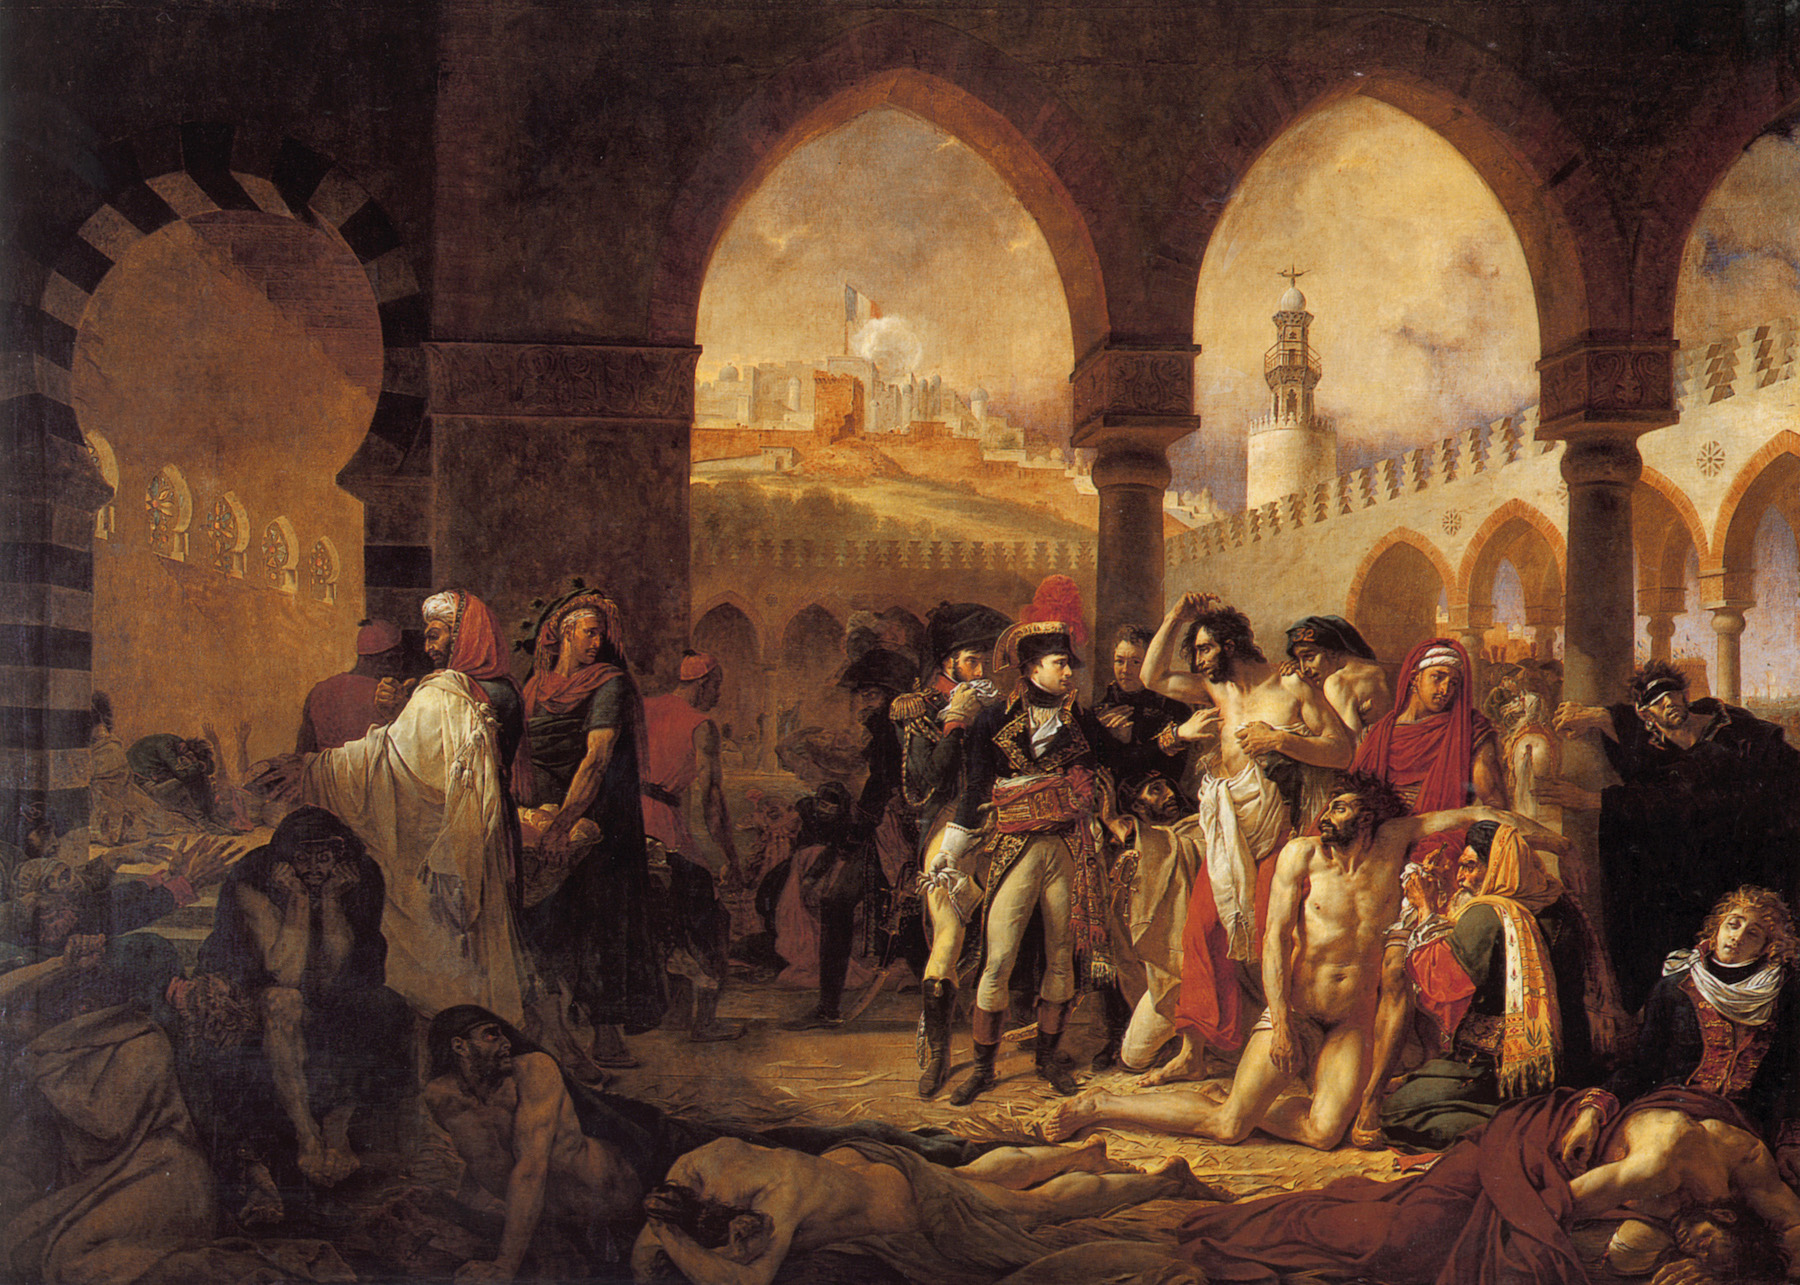 Antoine-Jean Gros's Bonaparte Visiting the Plague-Stricken in Jaffa, c. 1804. Wikimedia.